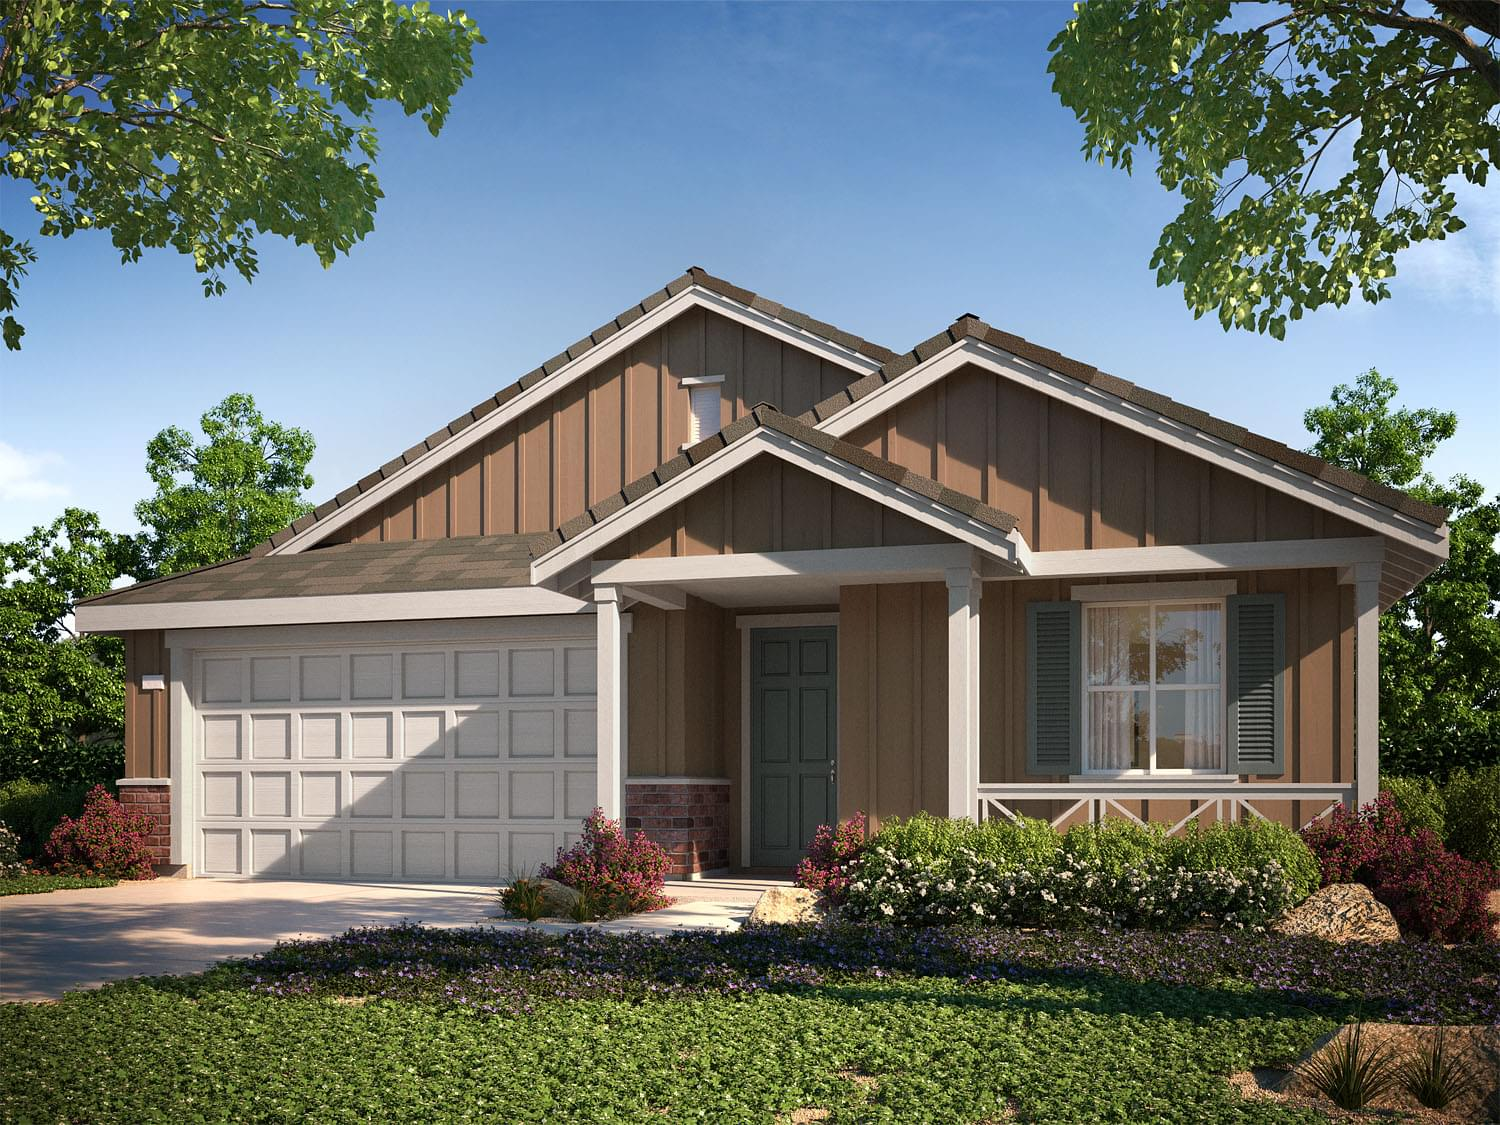 521 Spyglass Circle in Angels Camp, CA by DeNova Homes